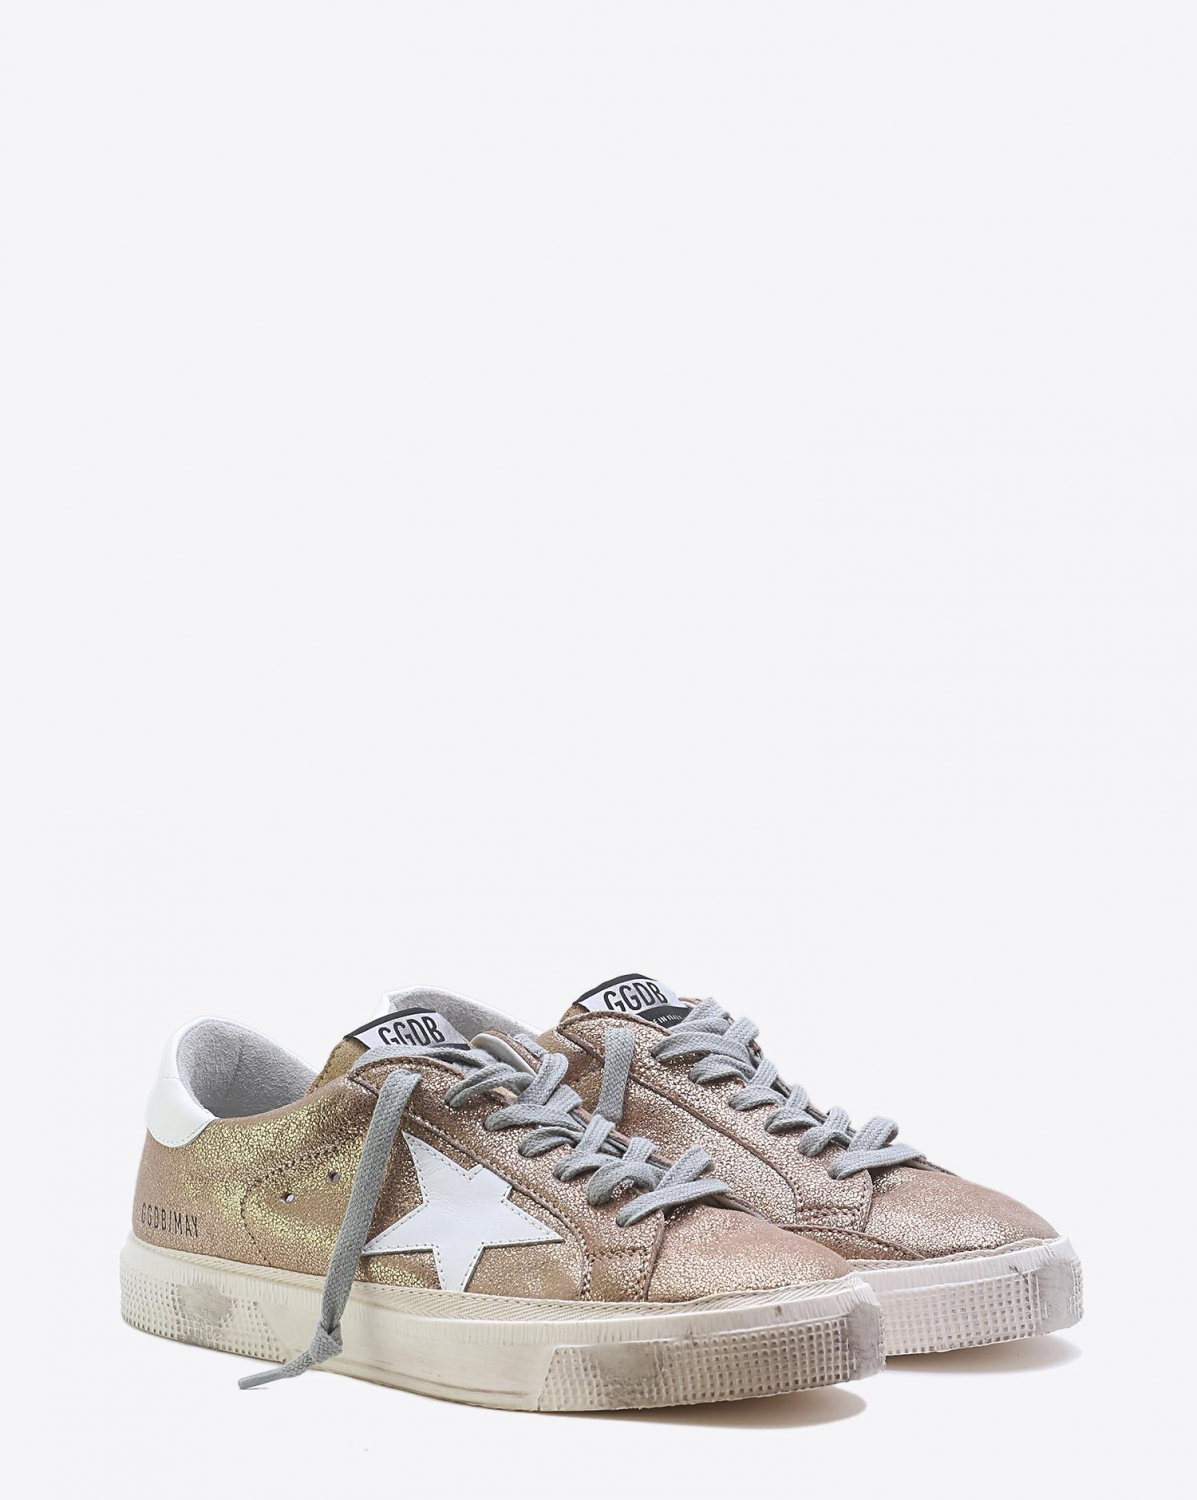 Golden Goose Woman Pré-Collection Sneakers May - Gold Crack White Star